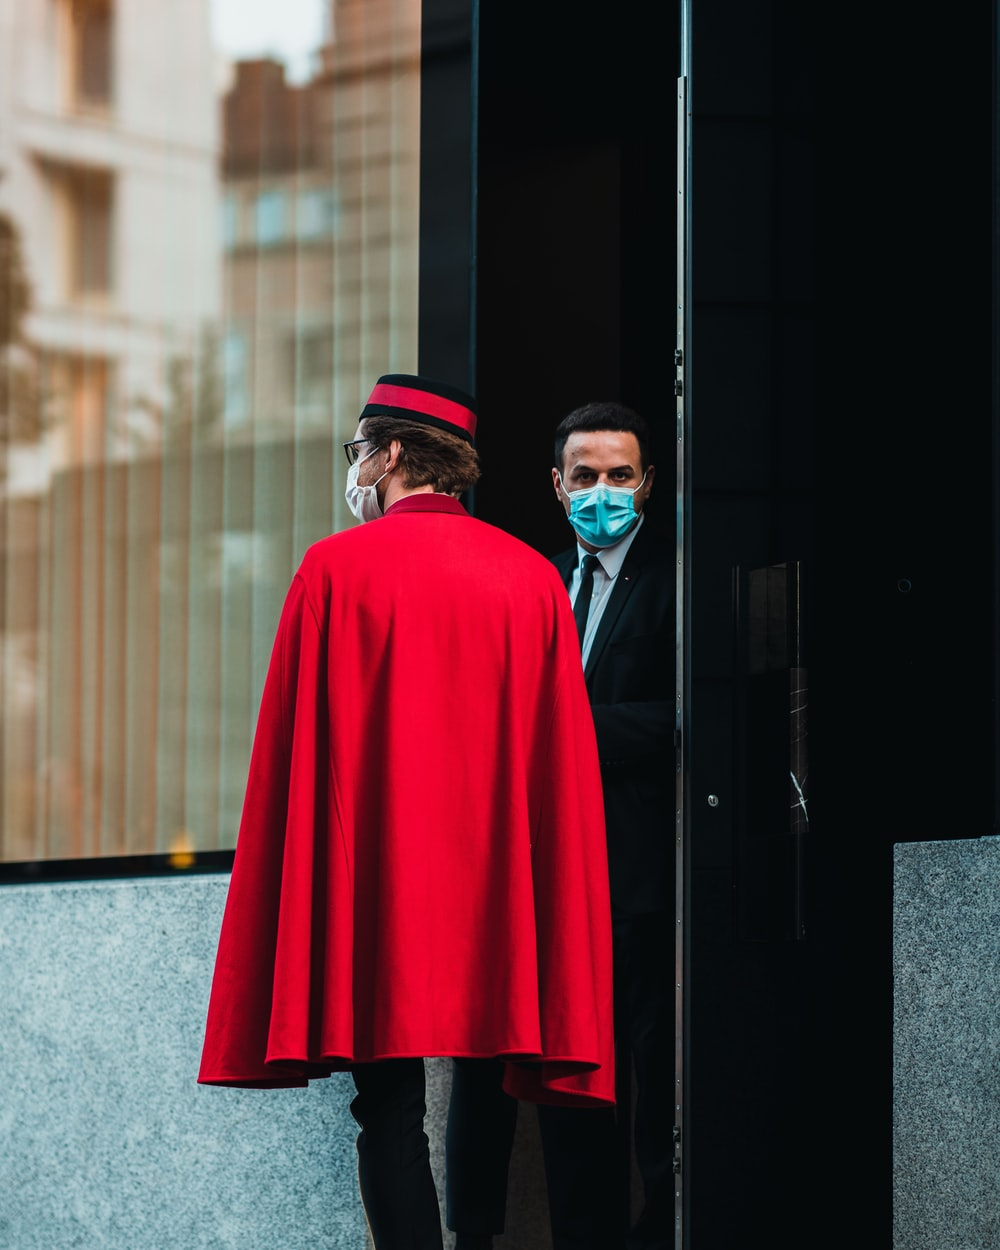 man in red coat standing near brown building during daytime